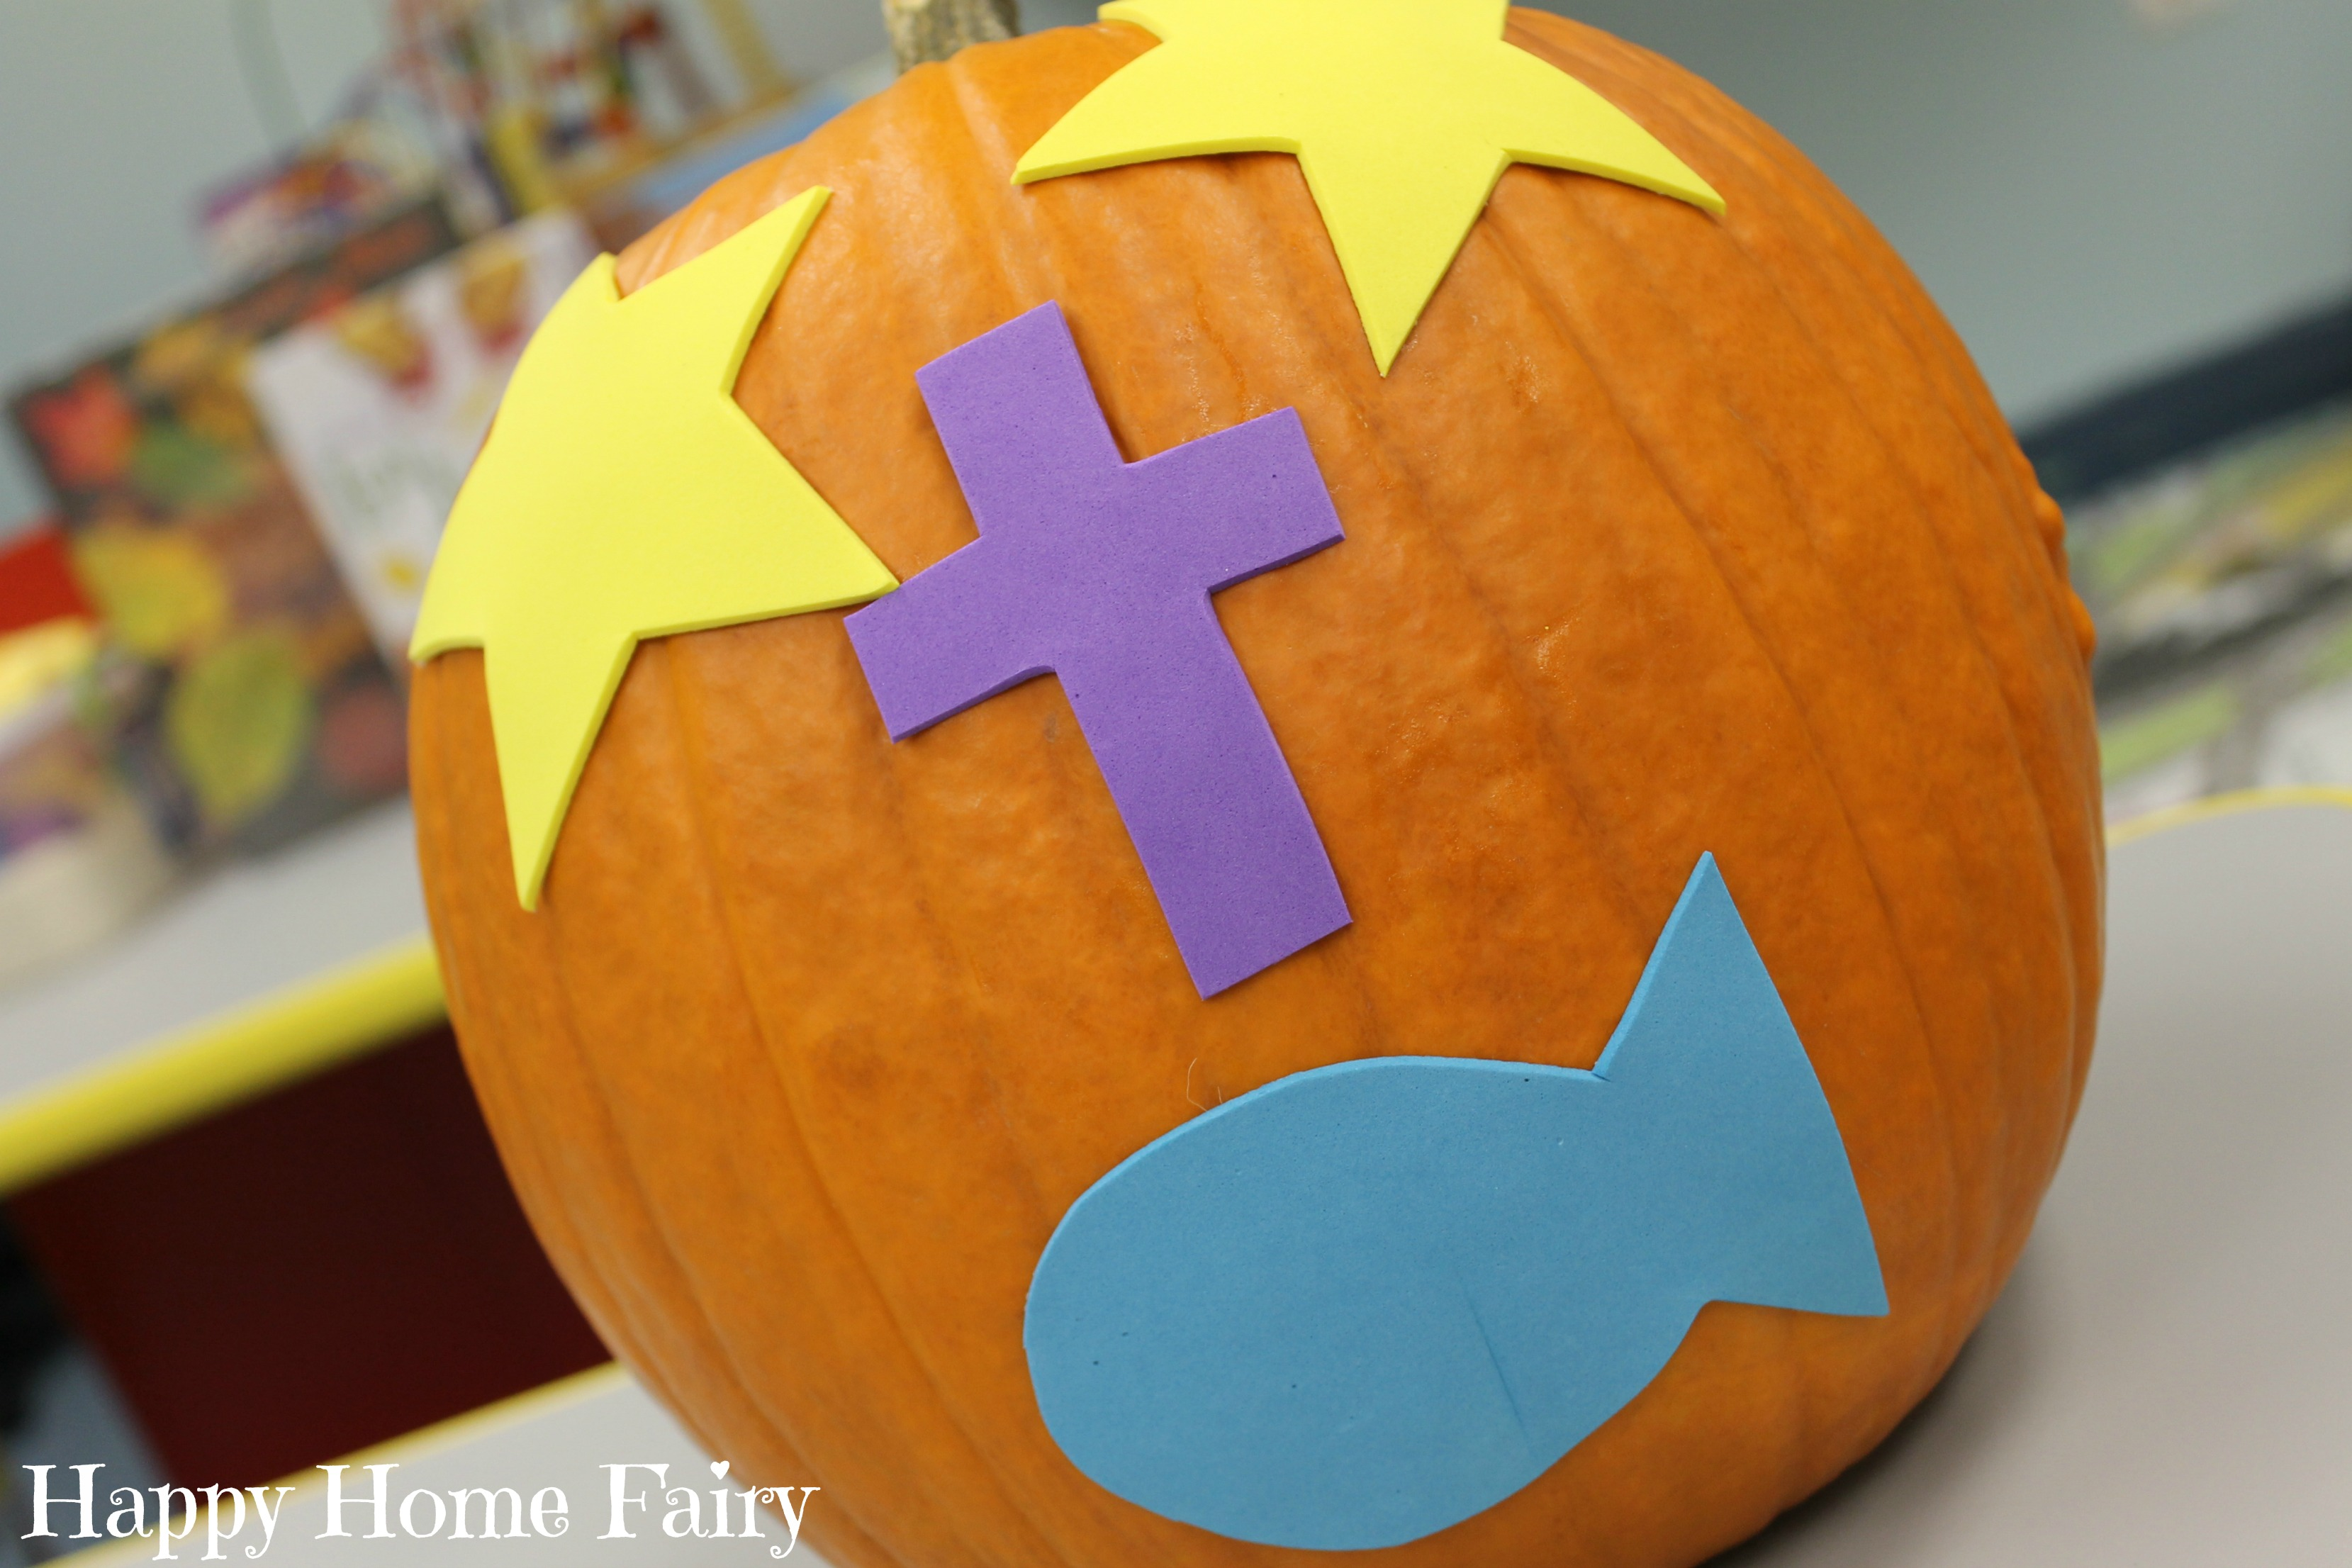 photograph relating to Pumpkin Gospel Printable known as The Gospel Pumpkin - Cost-free Printable! - Satisfied Property Fairy